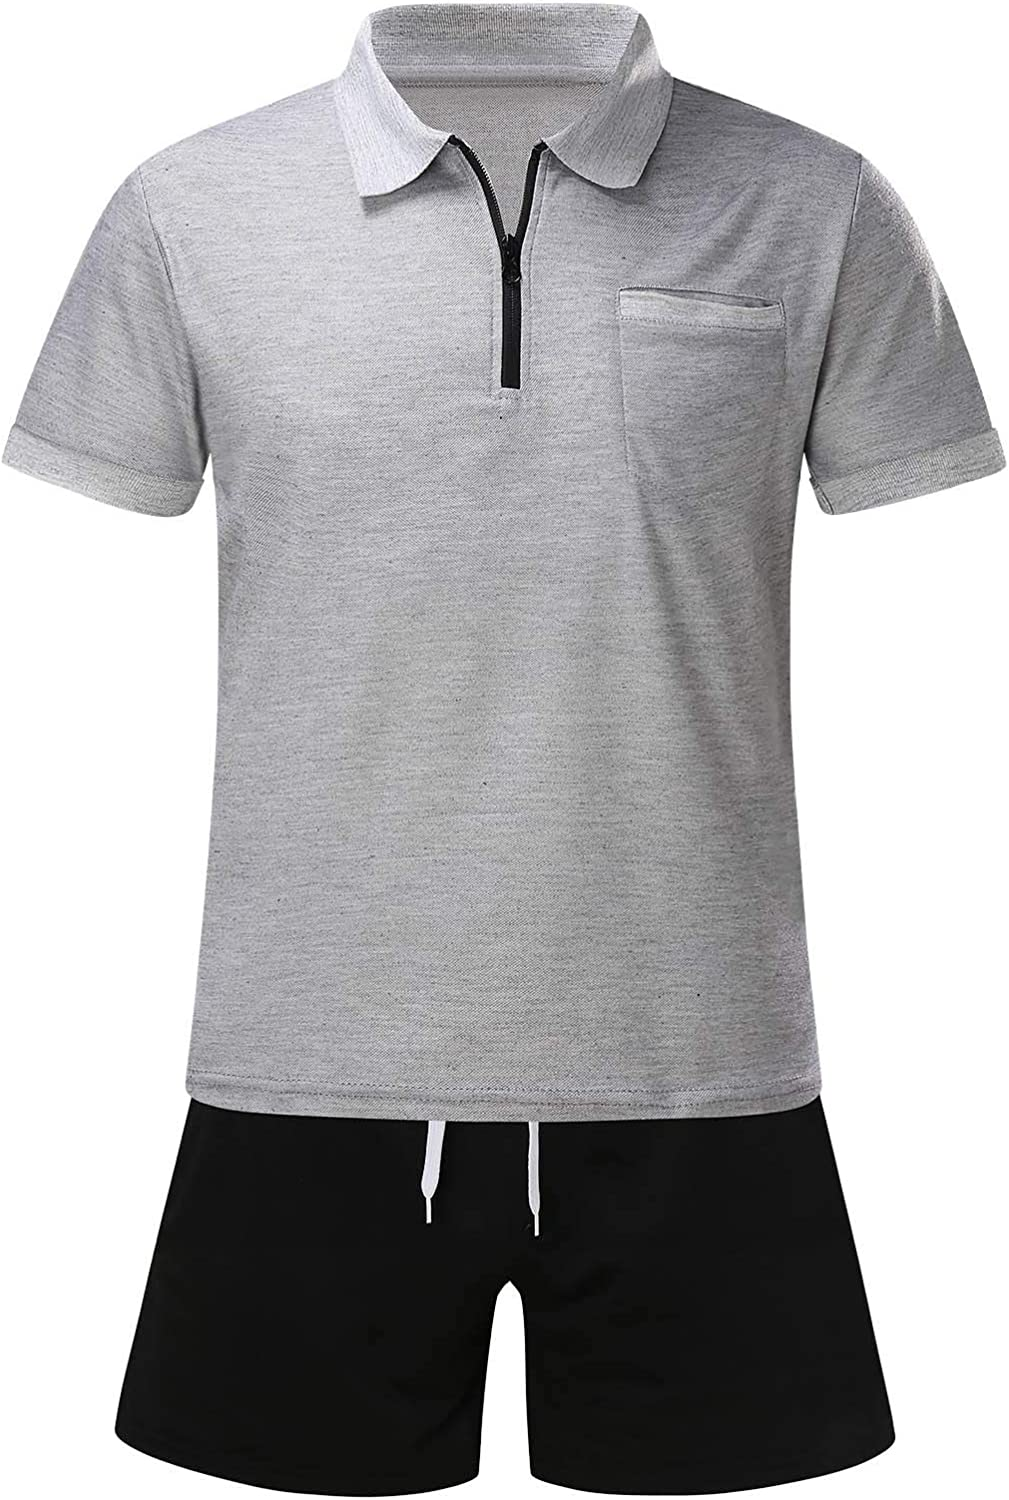 Max 68% OFF JSPOYOU Men's Tracksuit Summer Free shipping anywhere in the nation 2 Short Casual Pieces Activewear